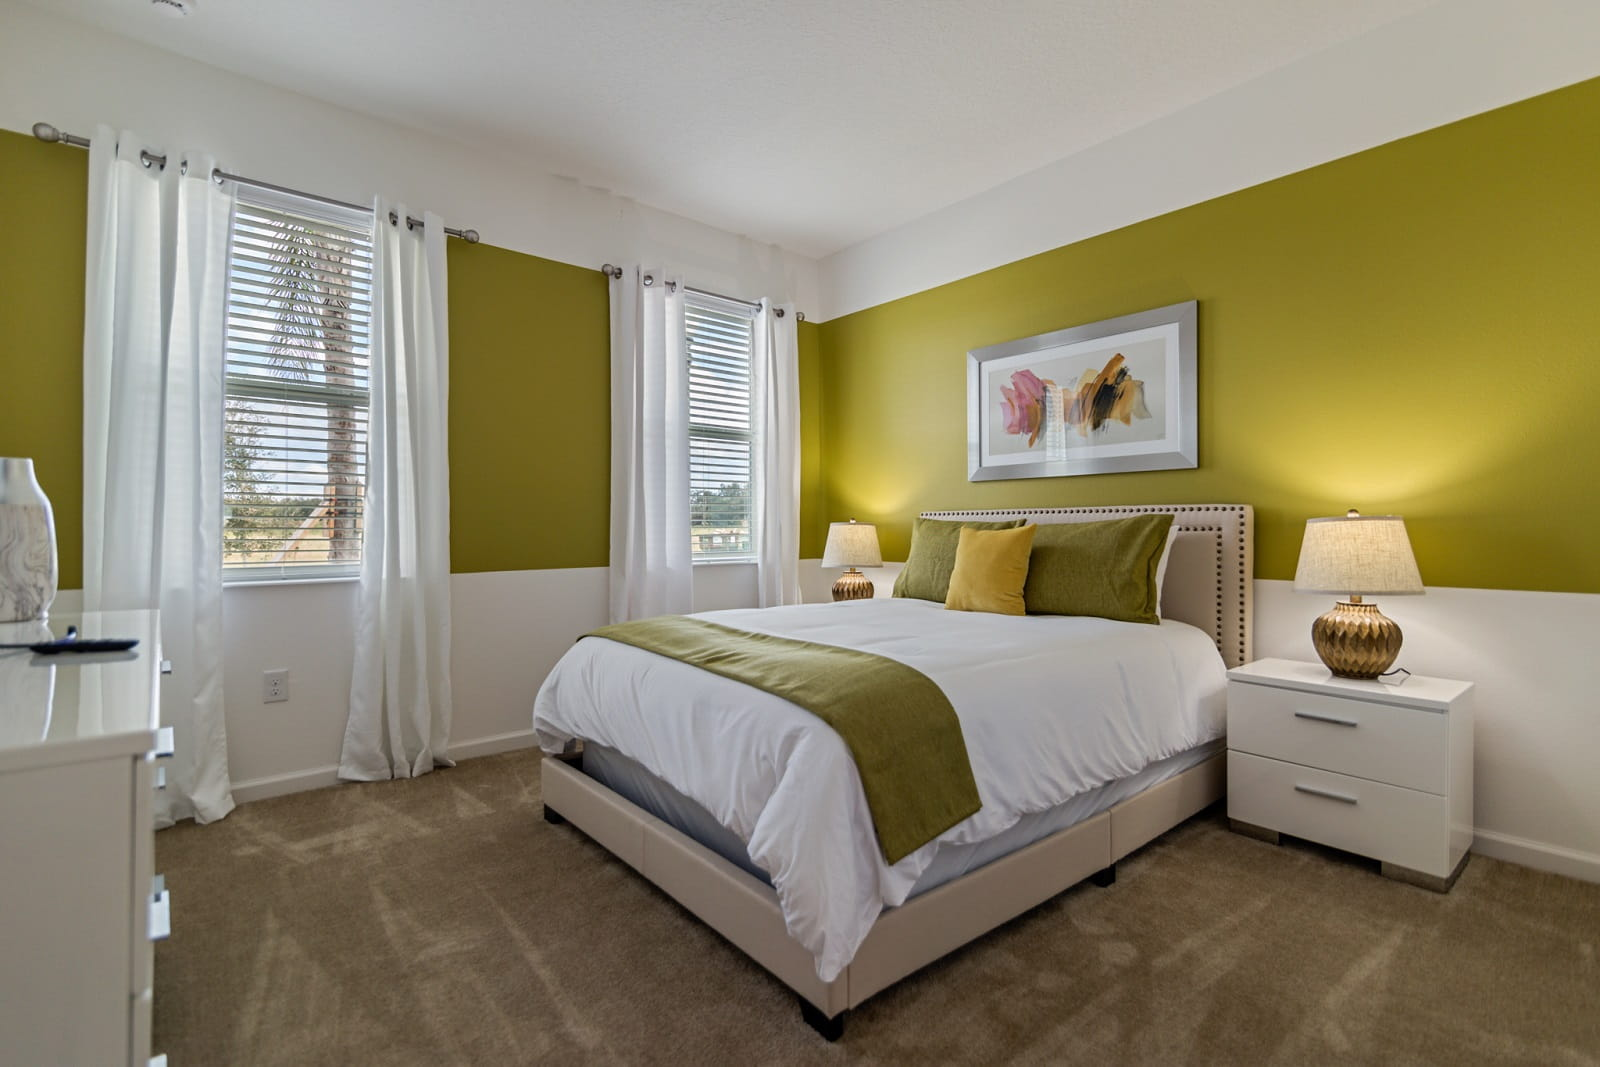 Real Estate Photography in Kissimmee - FL - USA - Bedroom View